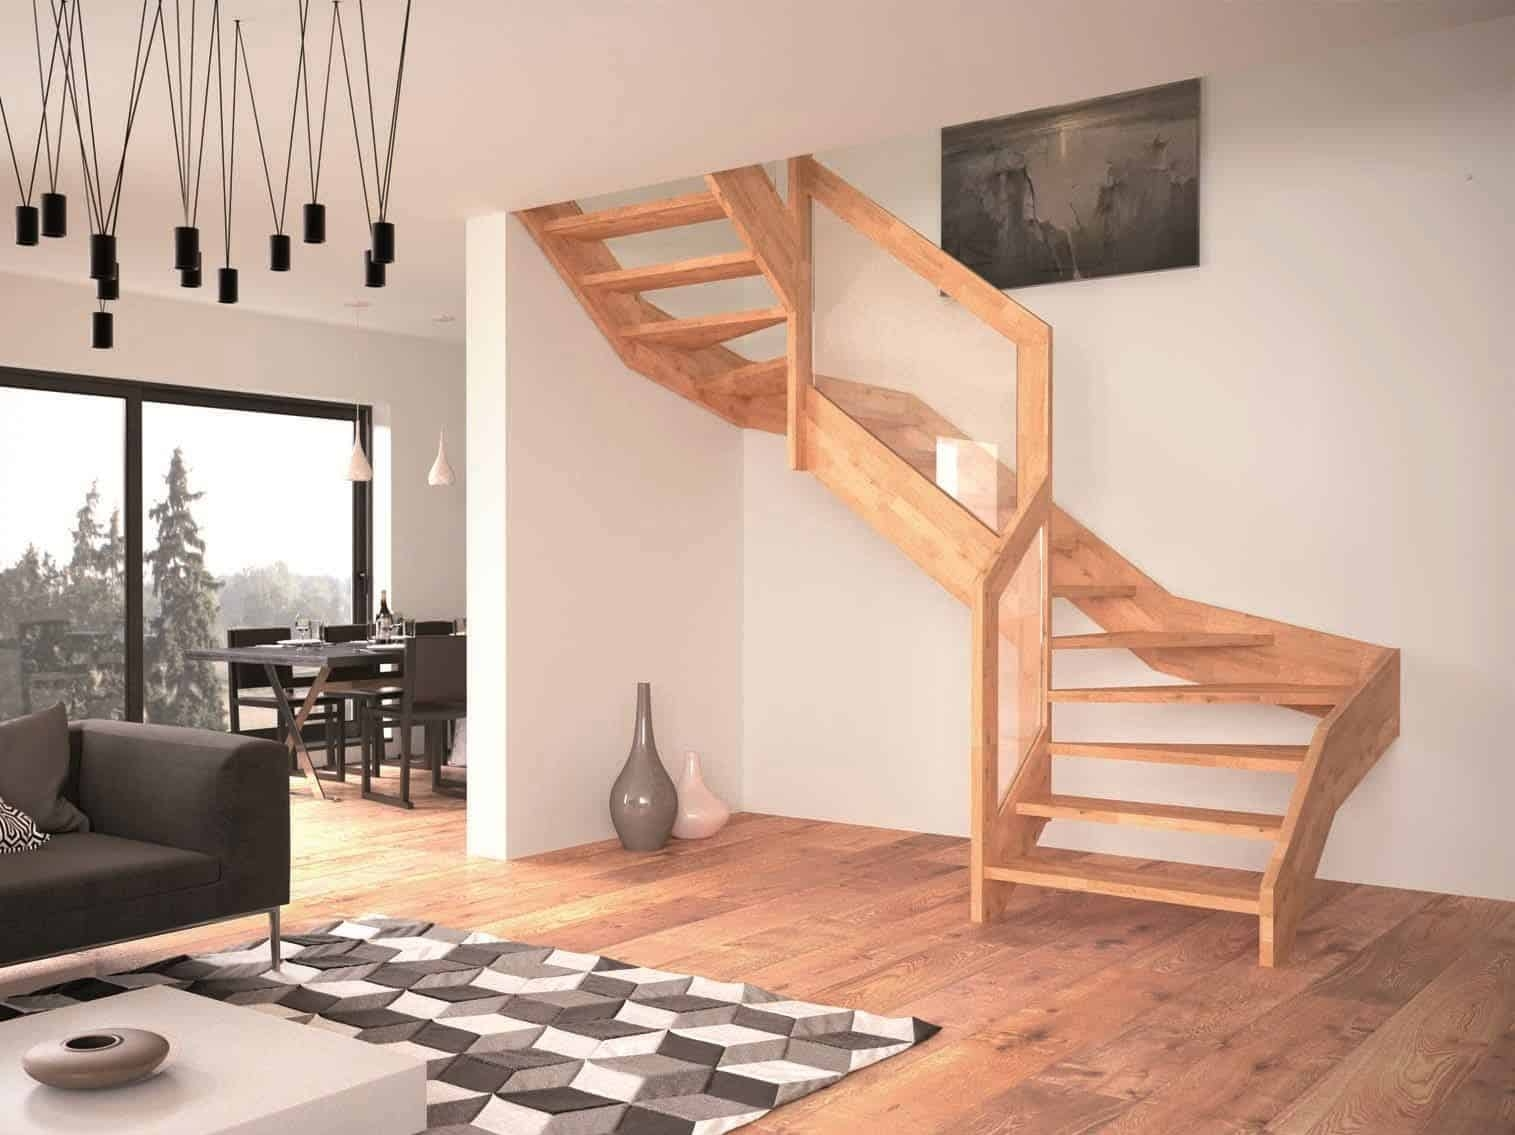 Contemporary Open Wooden Frame Staircases With Glass Railing By   Wood And Glass Staircase Railing   Tempered Glass   Glass Style Kerala   Rustic Glass Interior   Architectural Modern Wood Stair   Interior